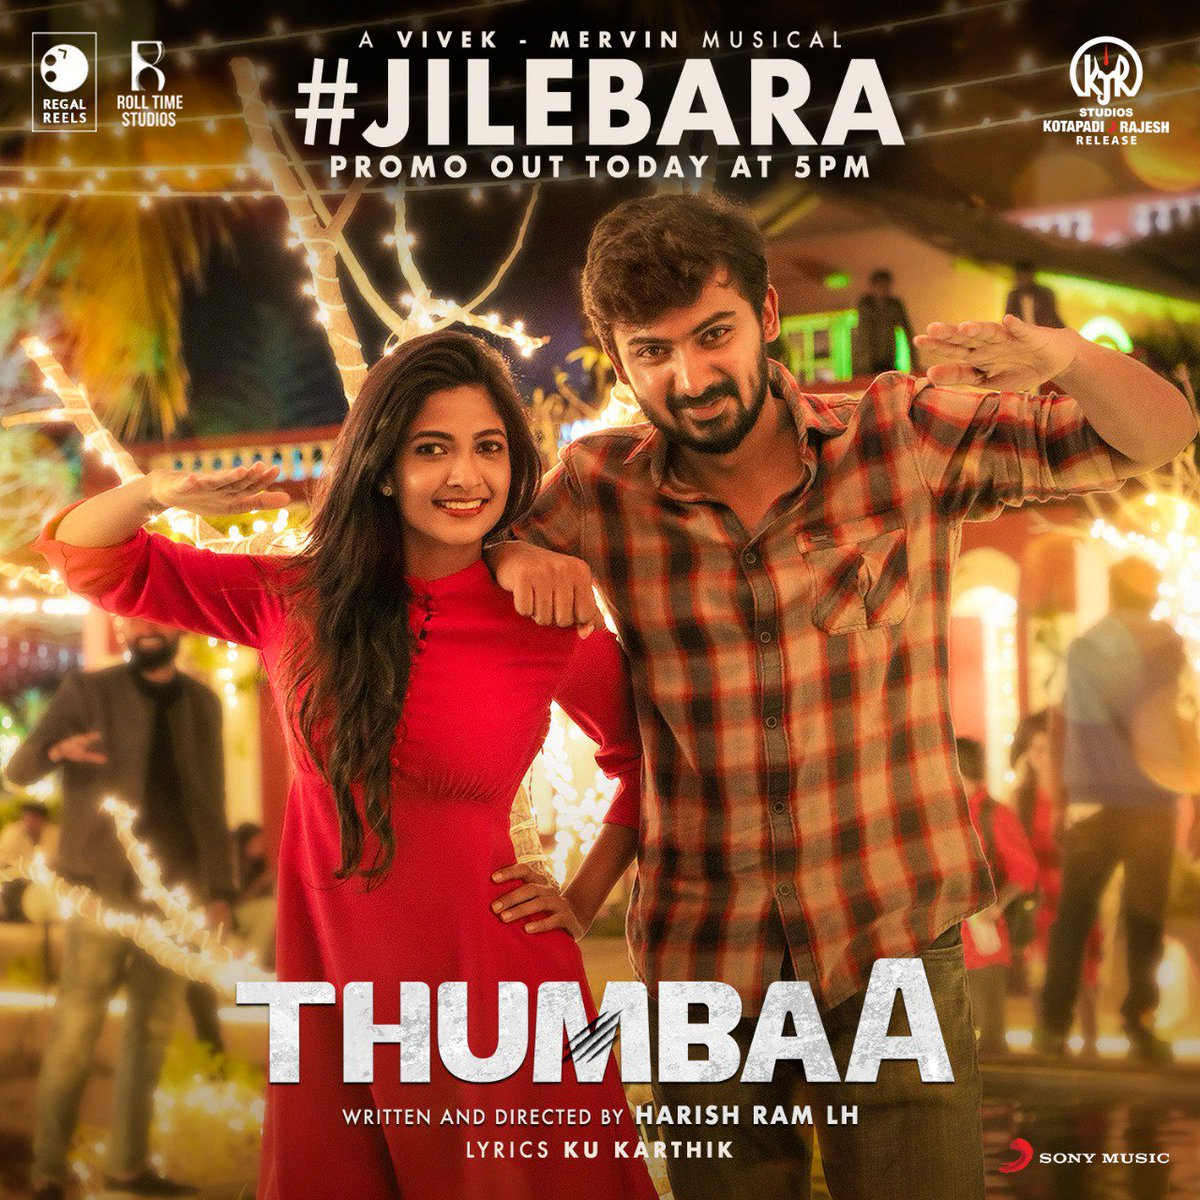 Make way for the next from #Thumbaa! A fun, musical treat from @iamviveksiva & @MervinJSolomon #Jilebara ! Watch out for the promo releasing at 5PM today! 💃🎶   @harishramlh @Darshan_Offl @ikeerthipandian